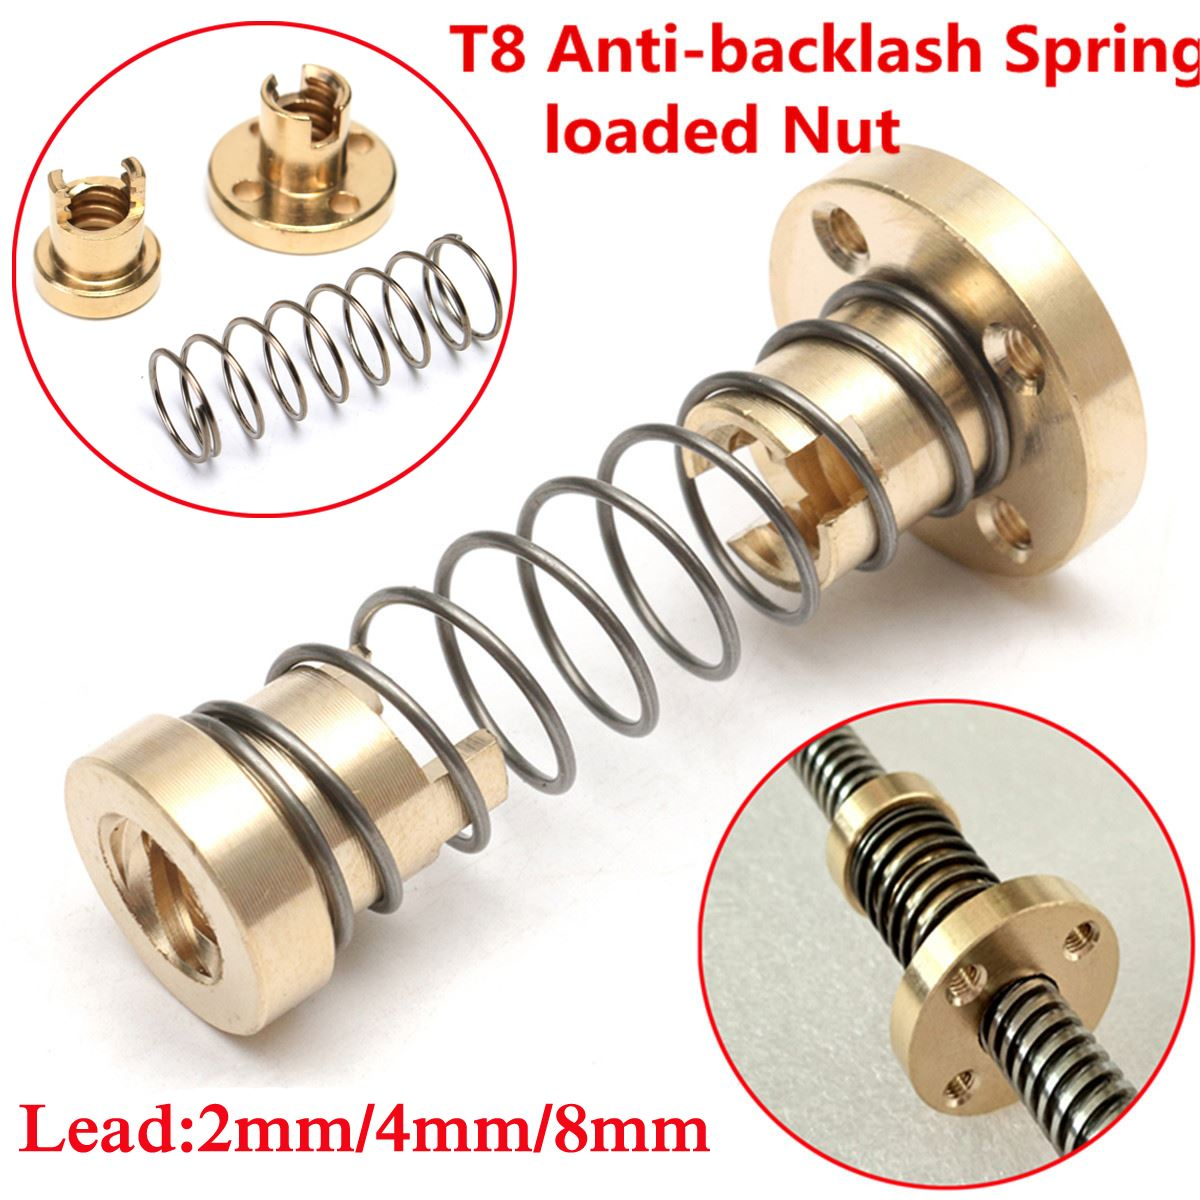 3D Printer Parts T8 Anti-Backlash Spring Loaded Nut For 2mm /4mm/ 8mm Acme Brass Threaded Rod Lead Screws Adjustable